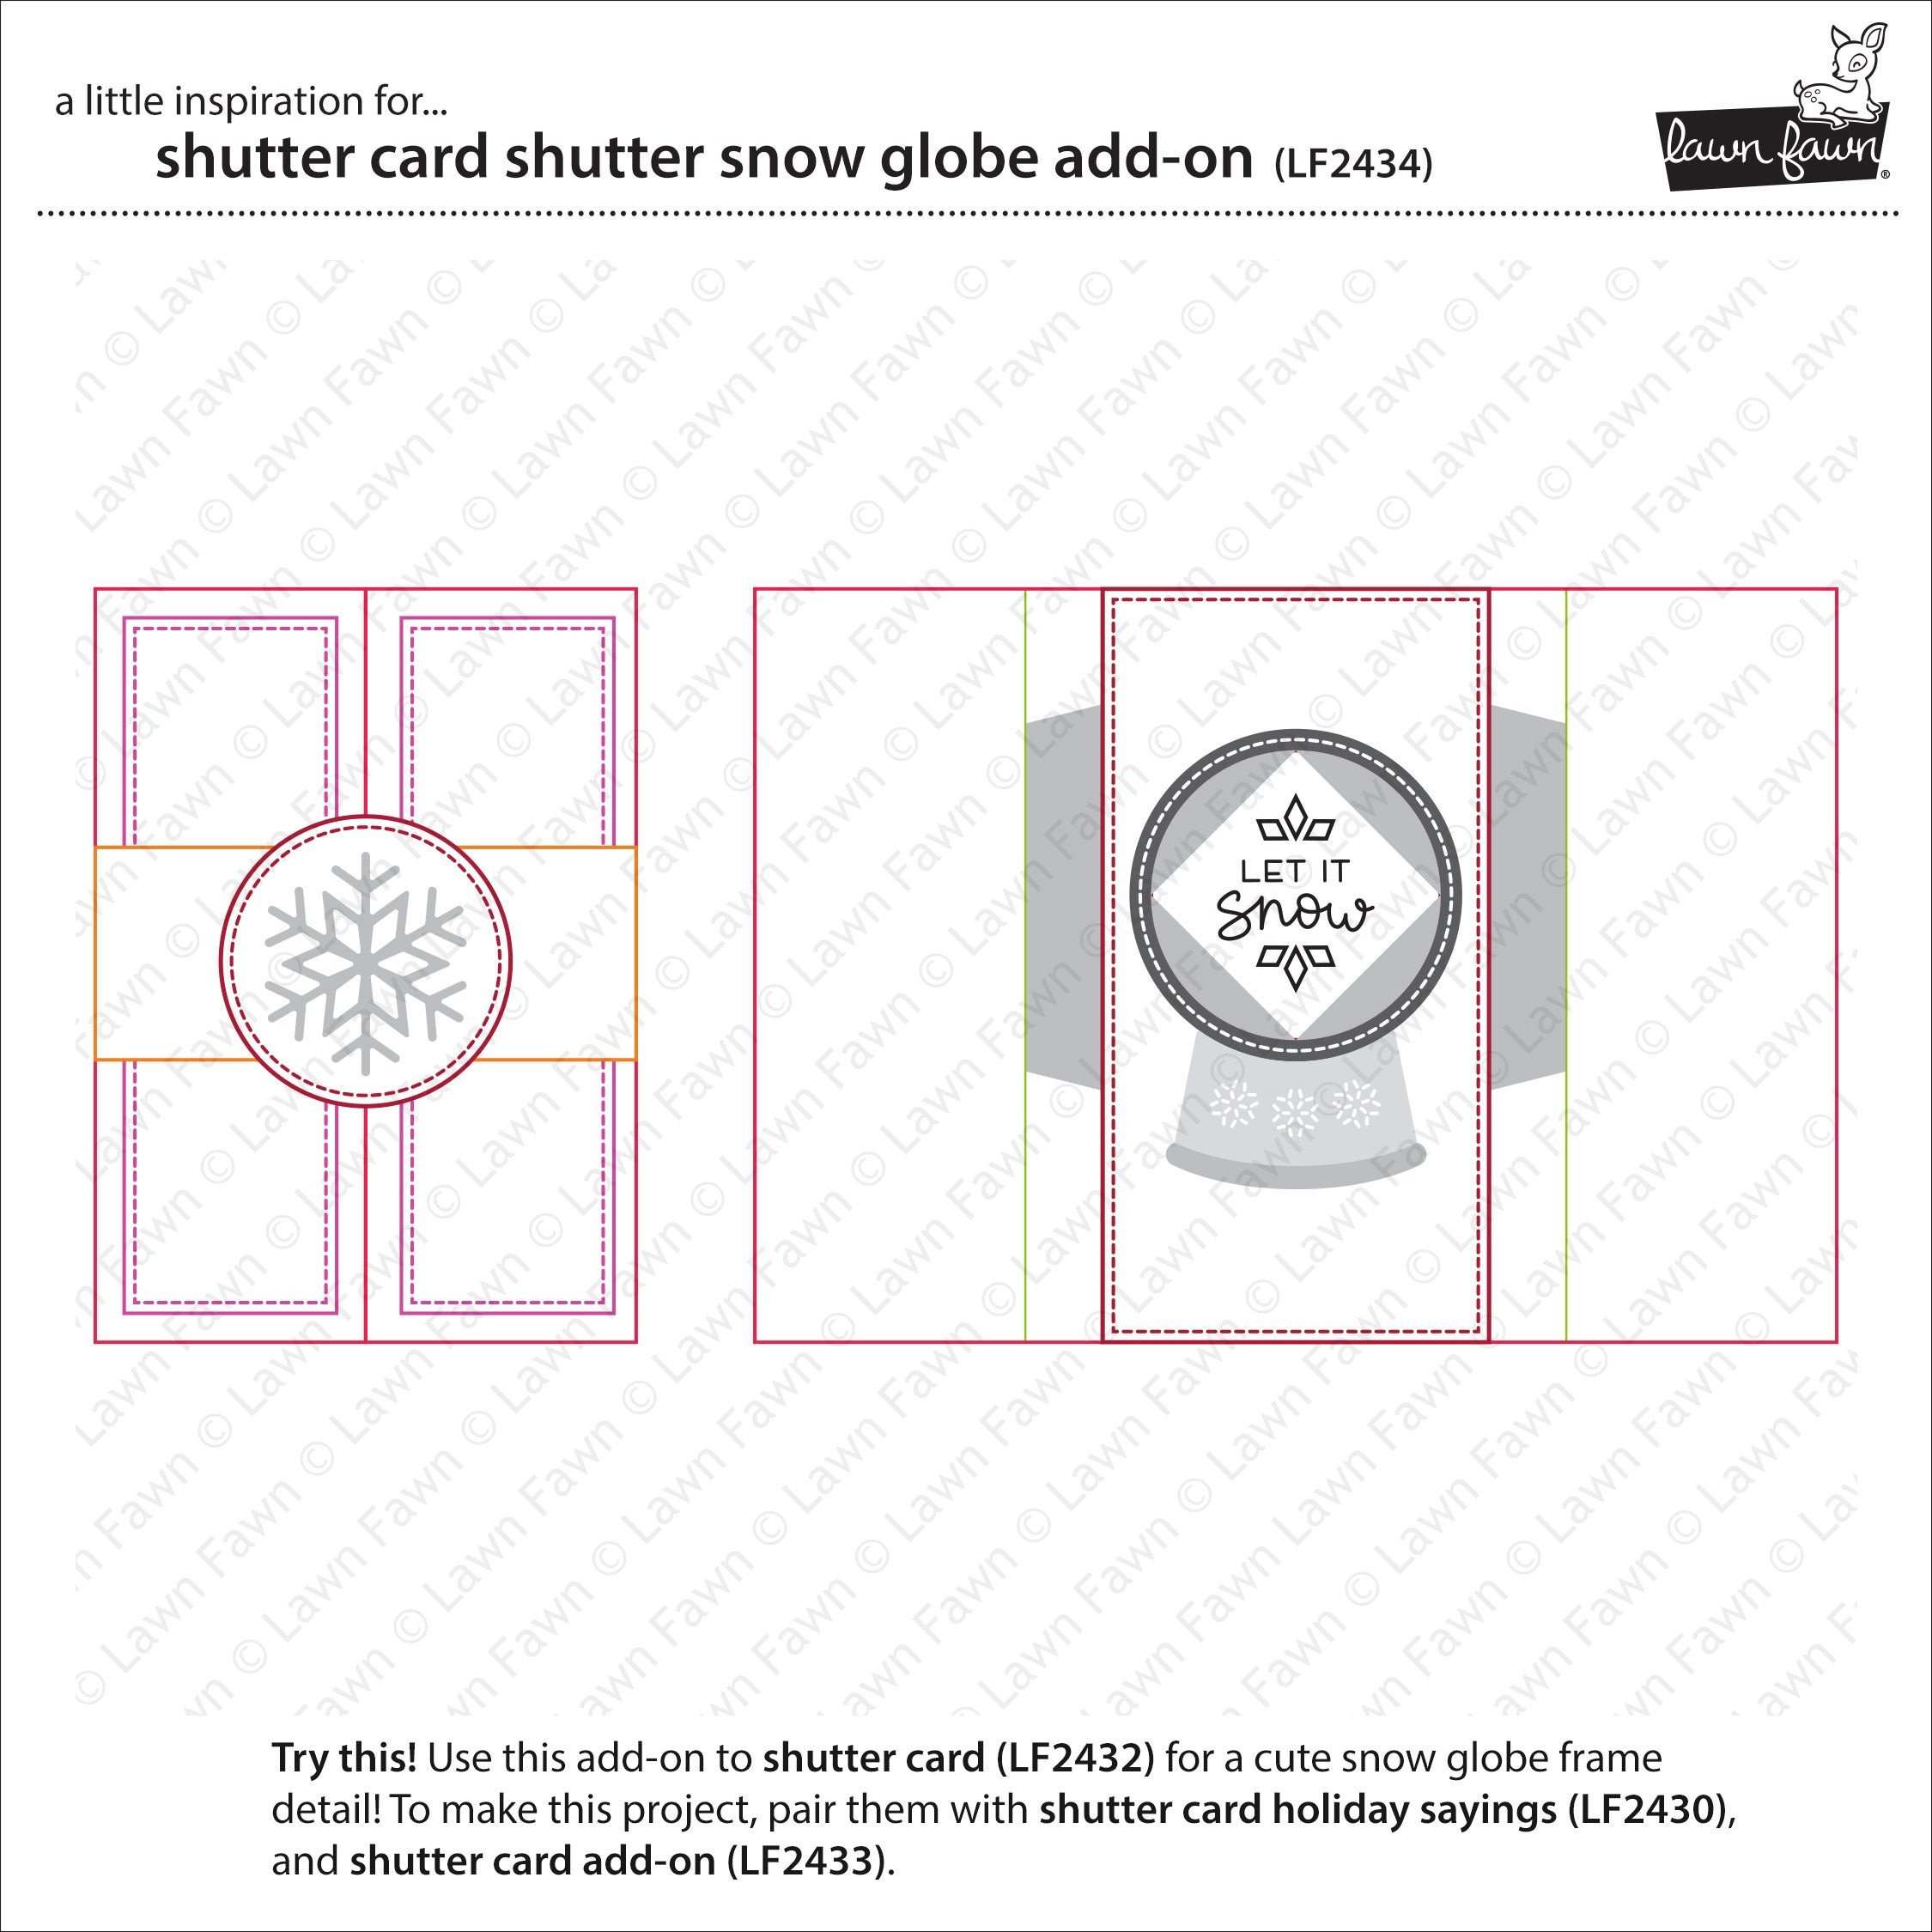 shutter card snow globe add-on